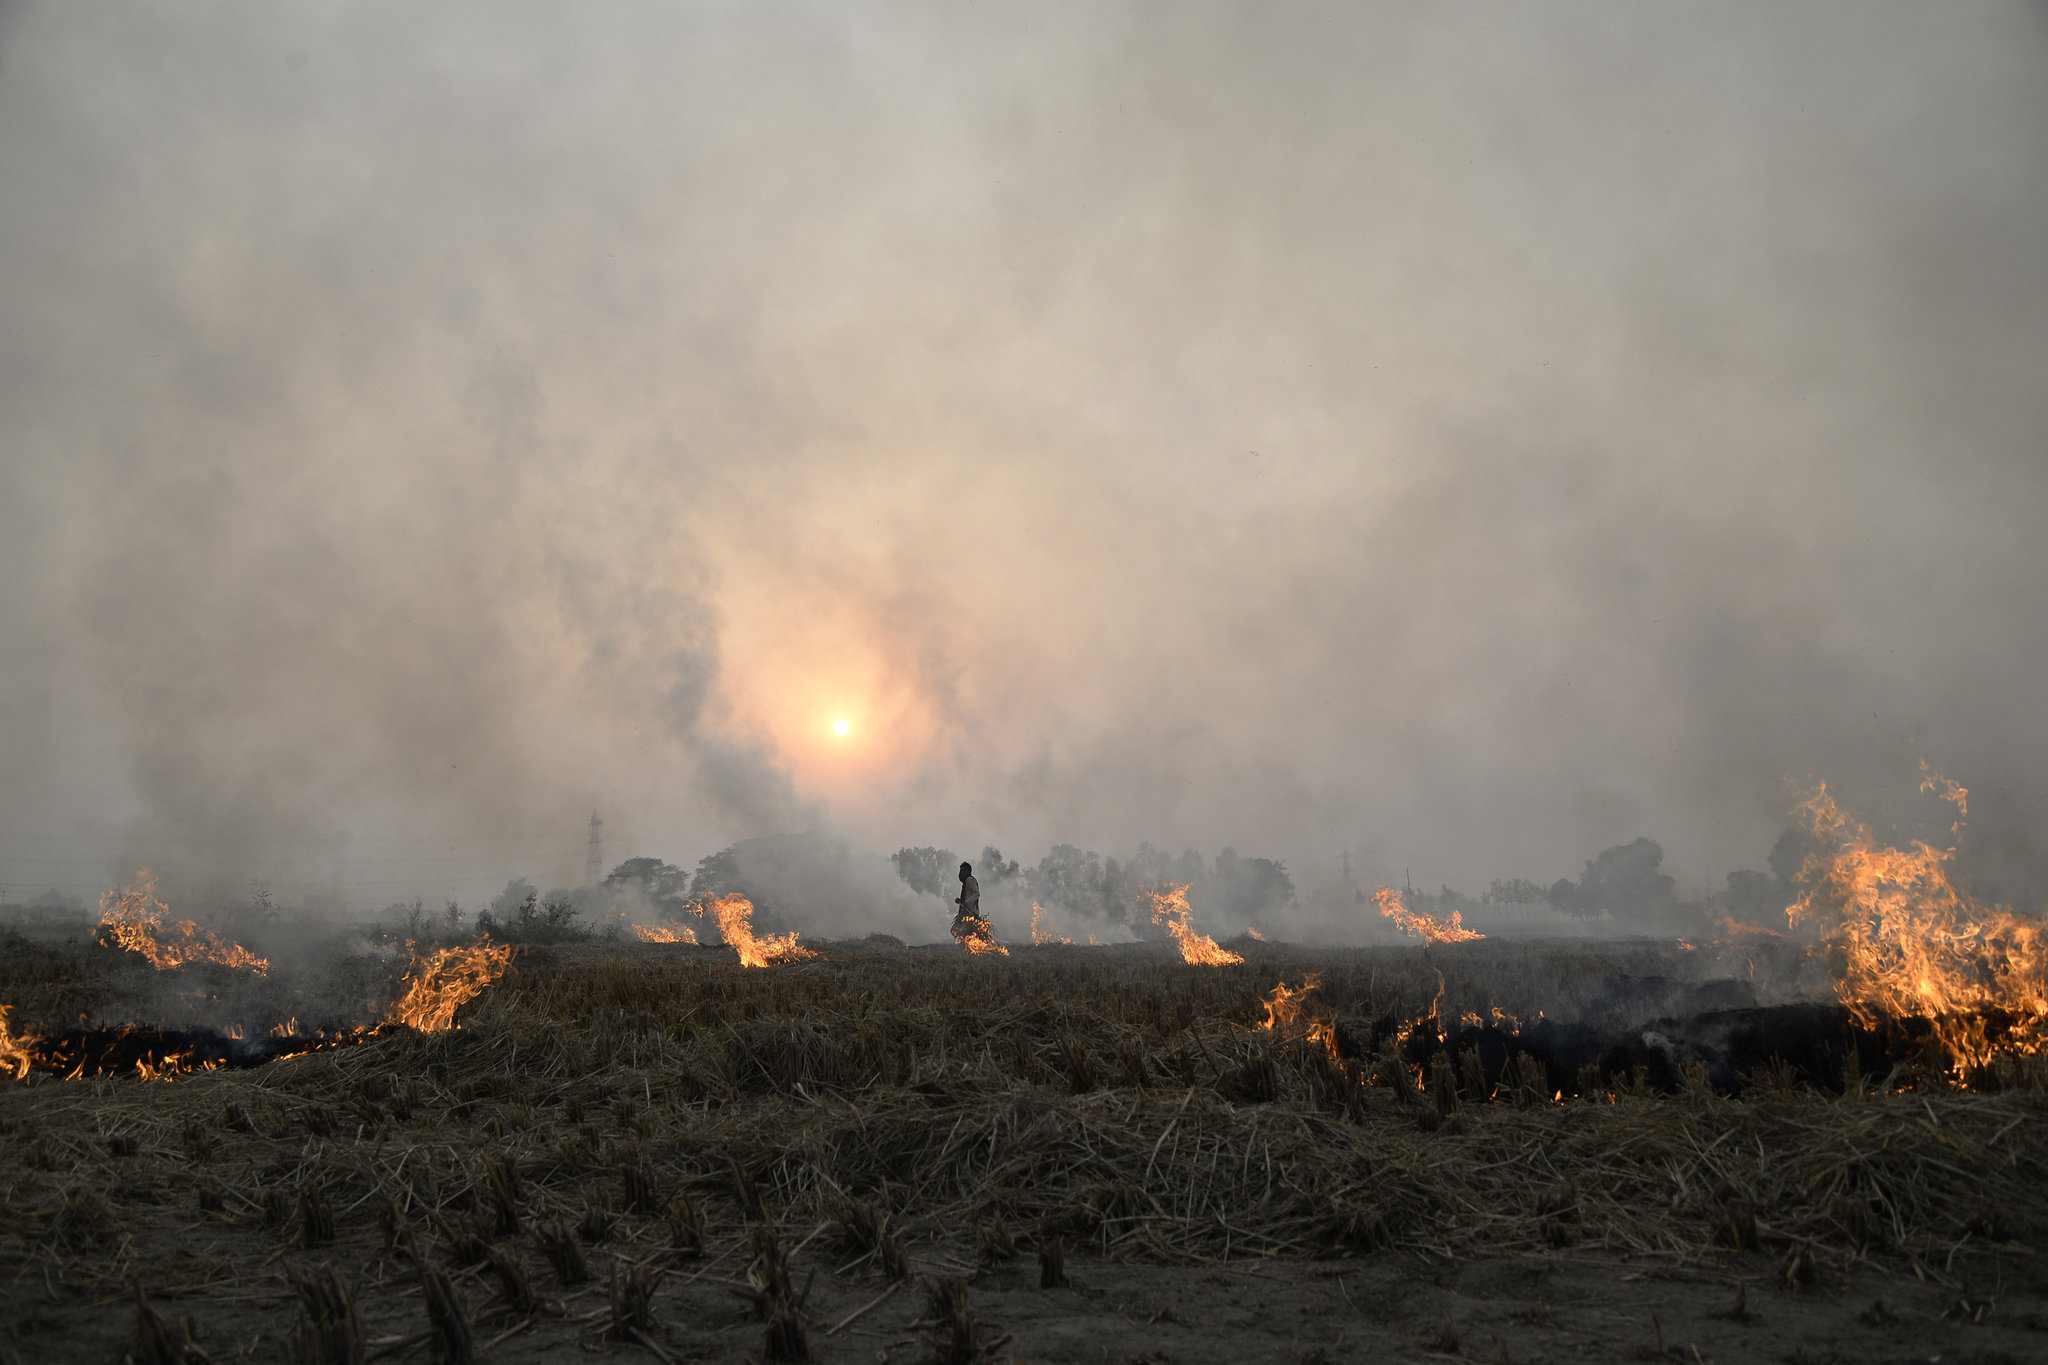 Farmers Unchecked Crop Burning Fuels India S Air Pollution The New York Times